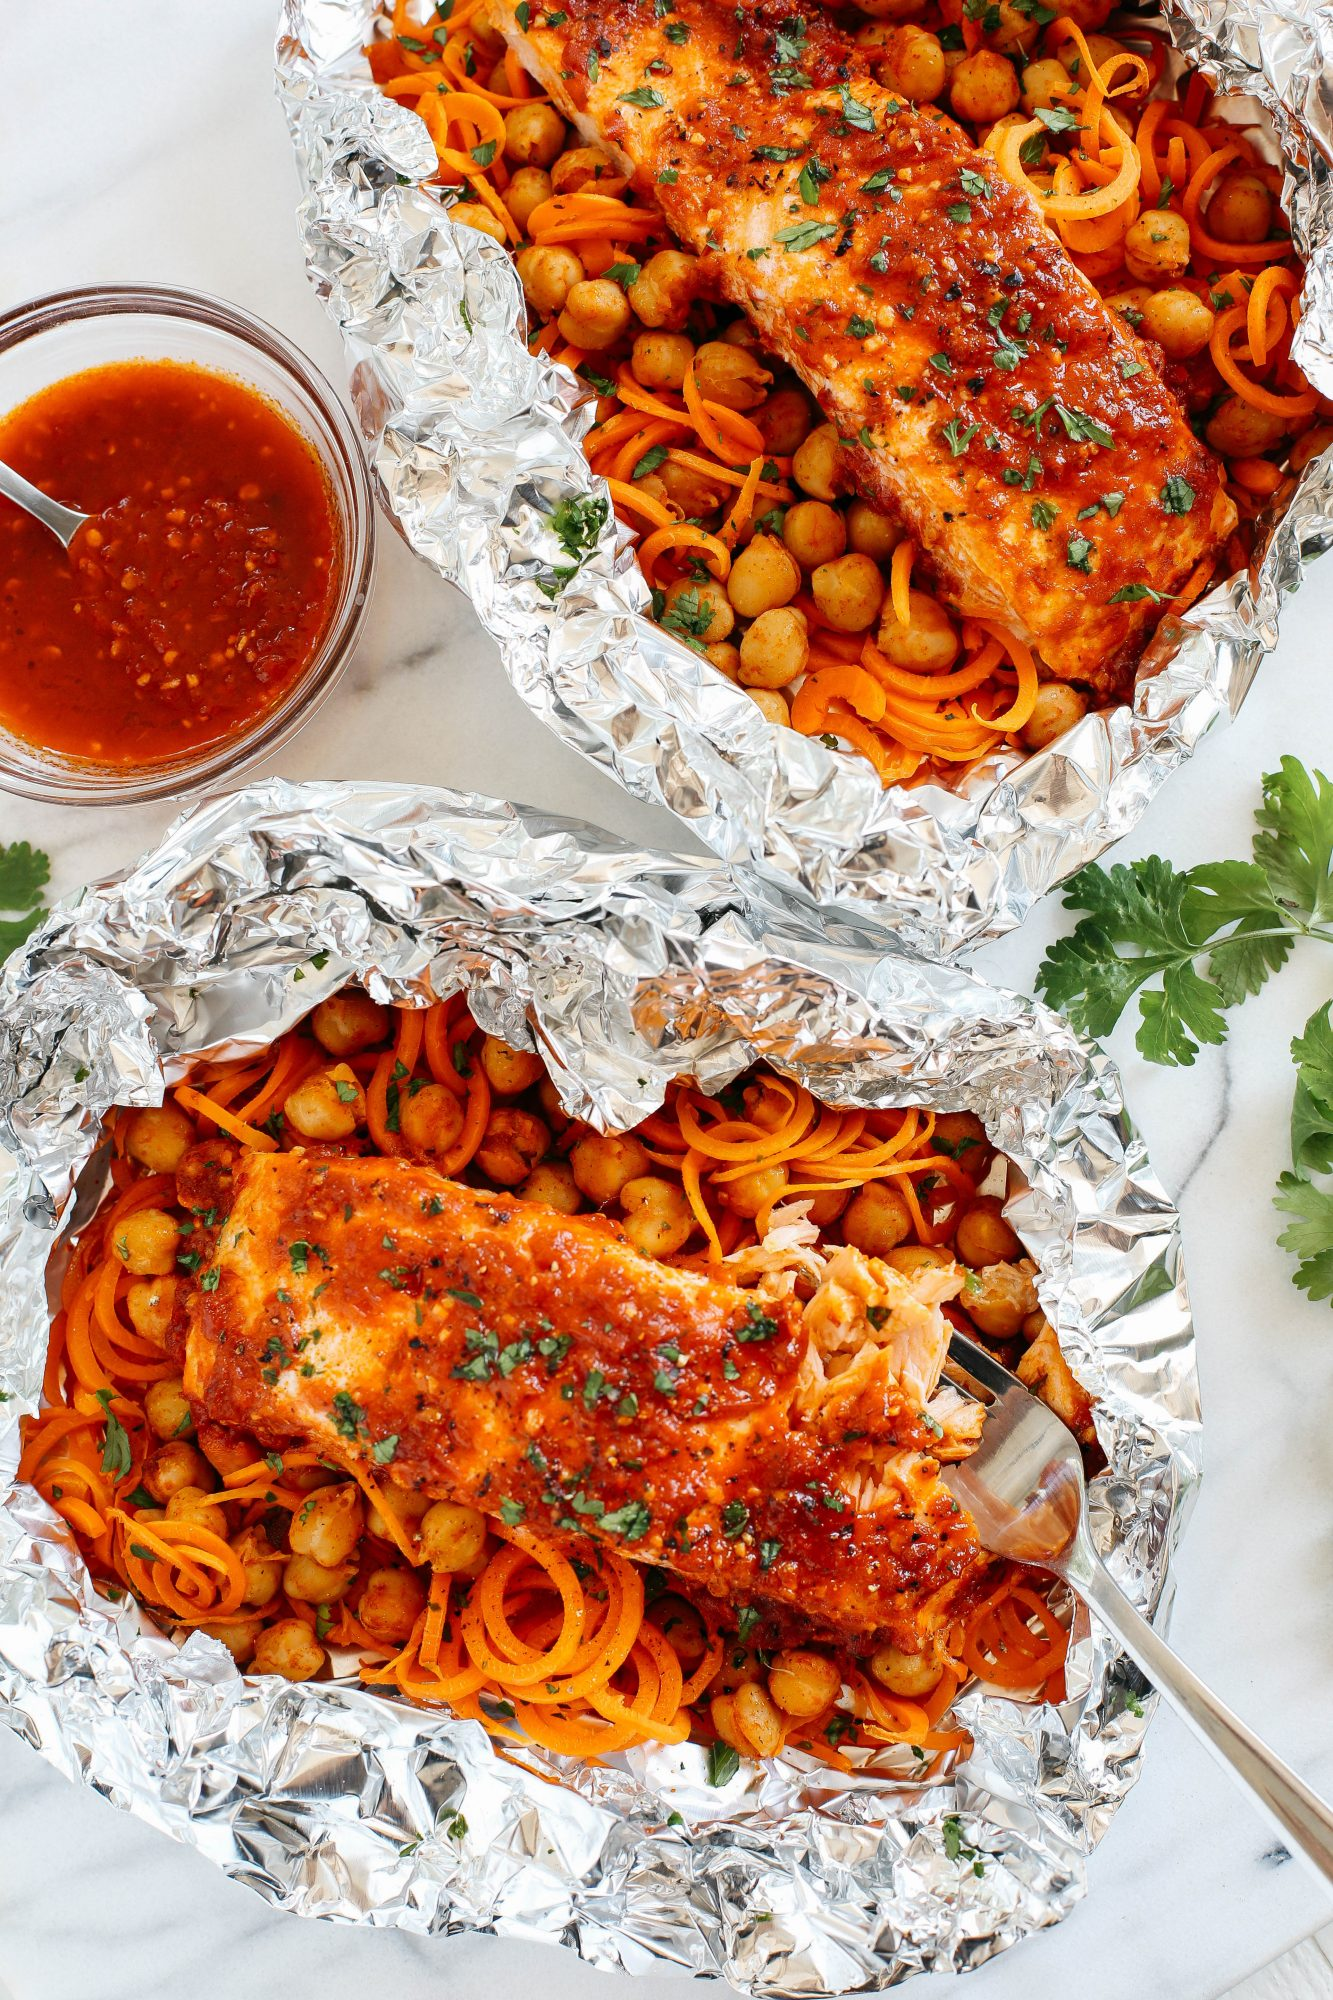 Moroccan Salmon with Carrot Noodles and Chickpeas